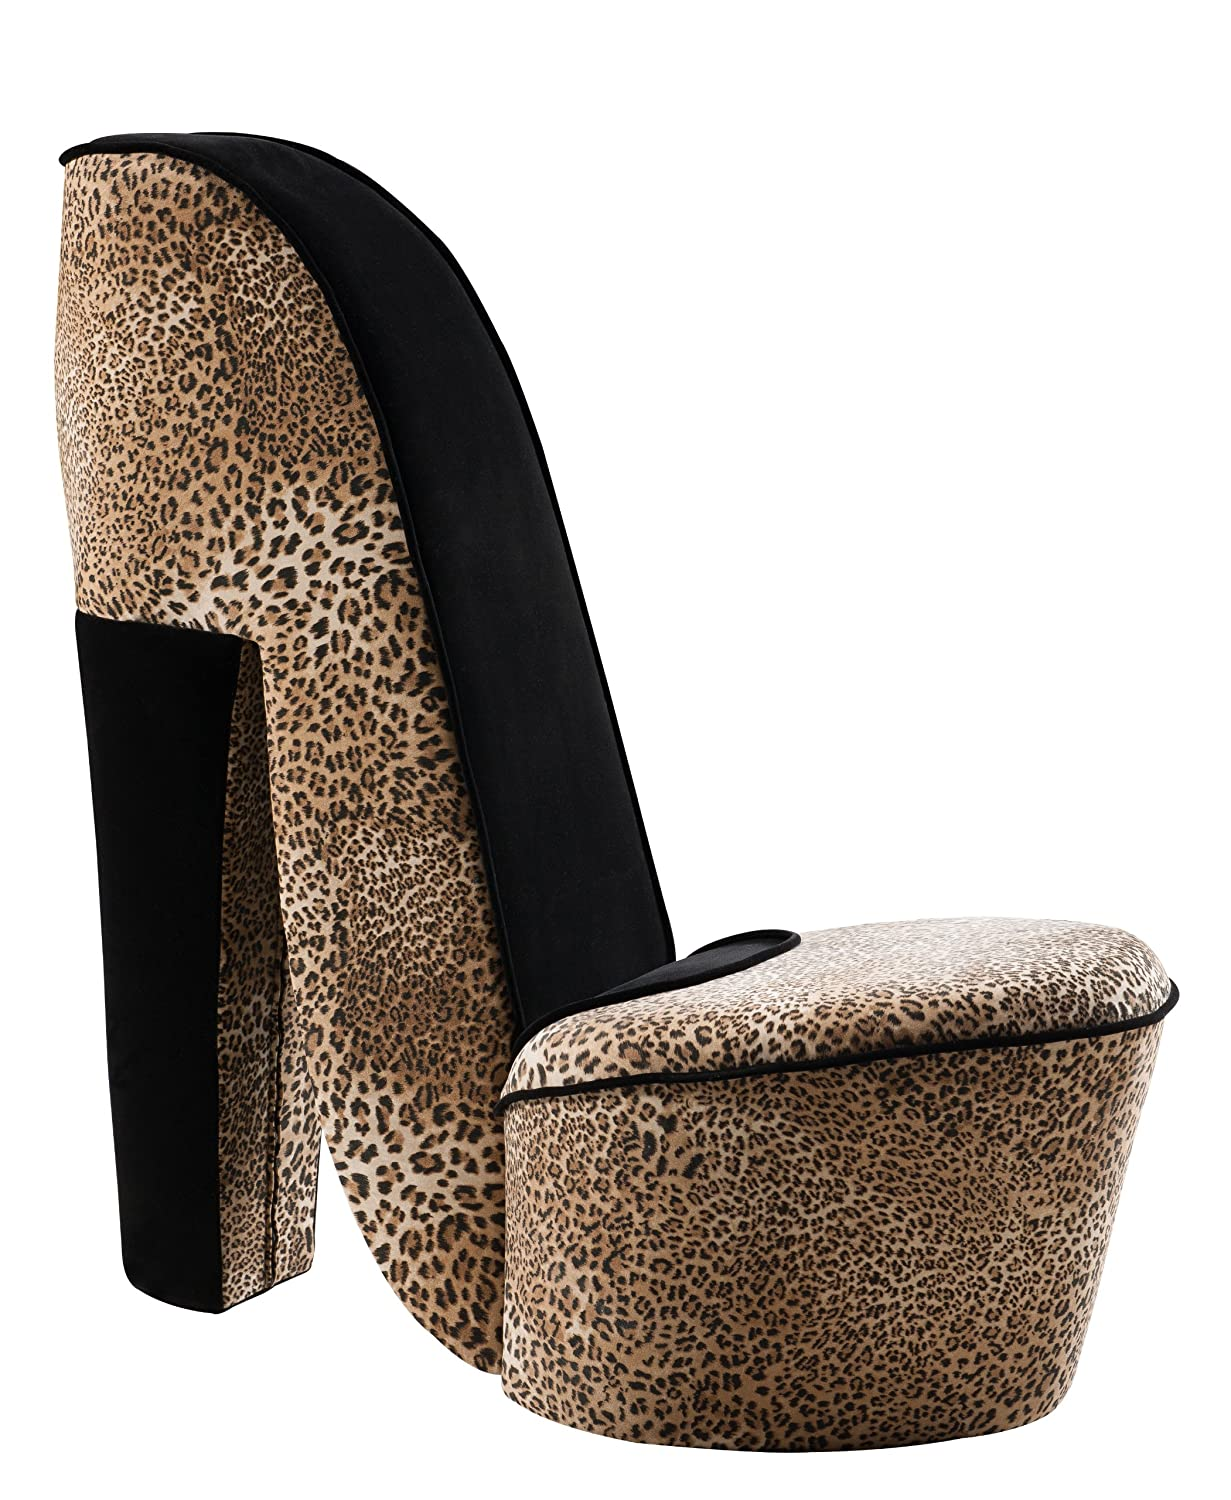 brand leopard design fabric high heel accent shoe